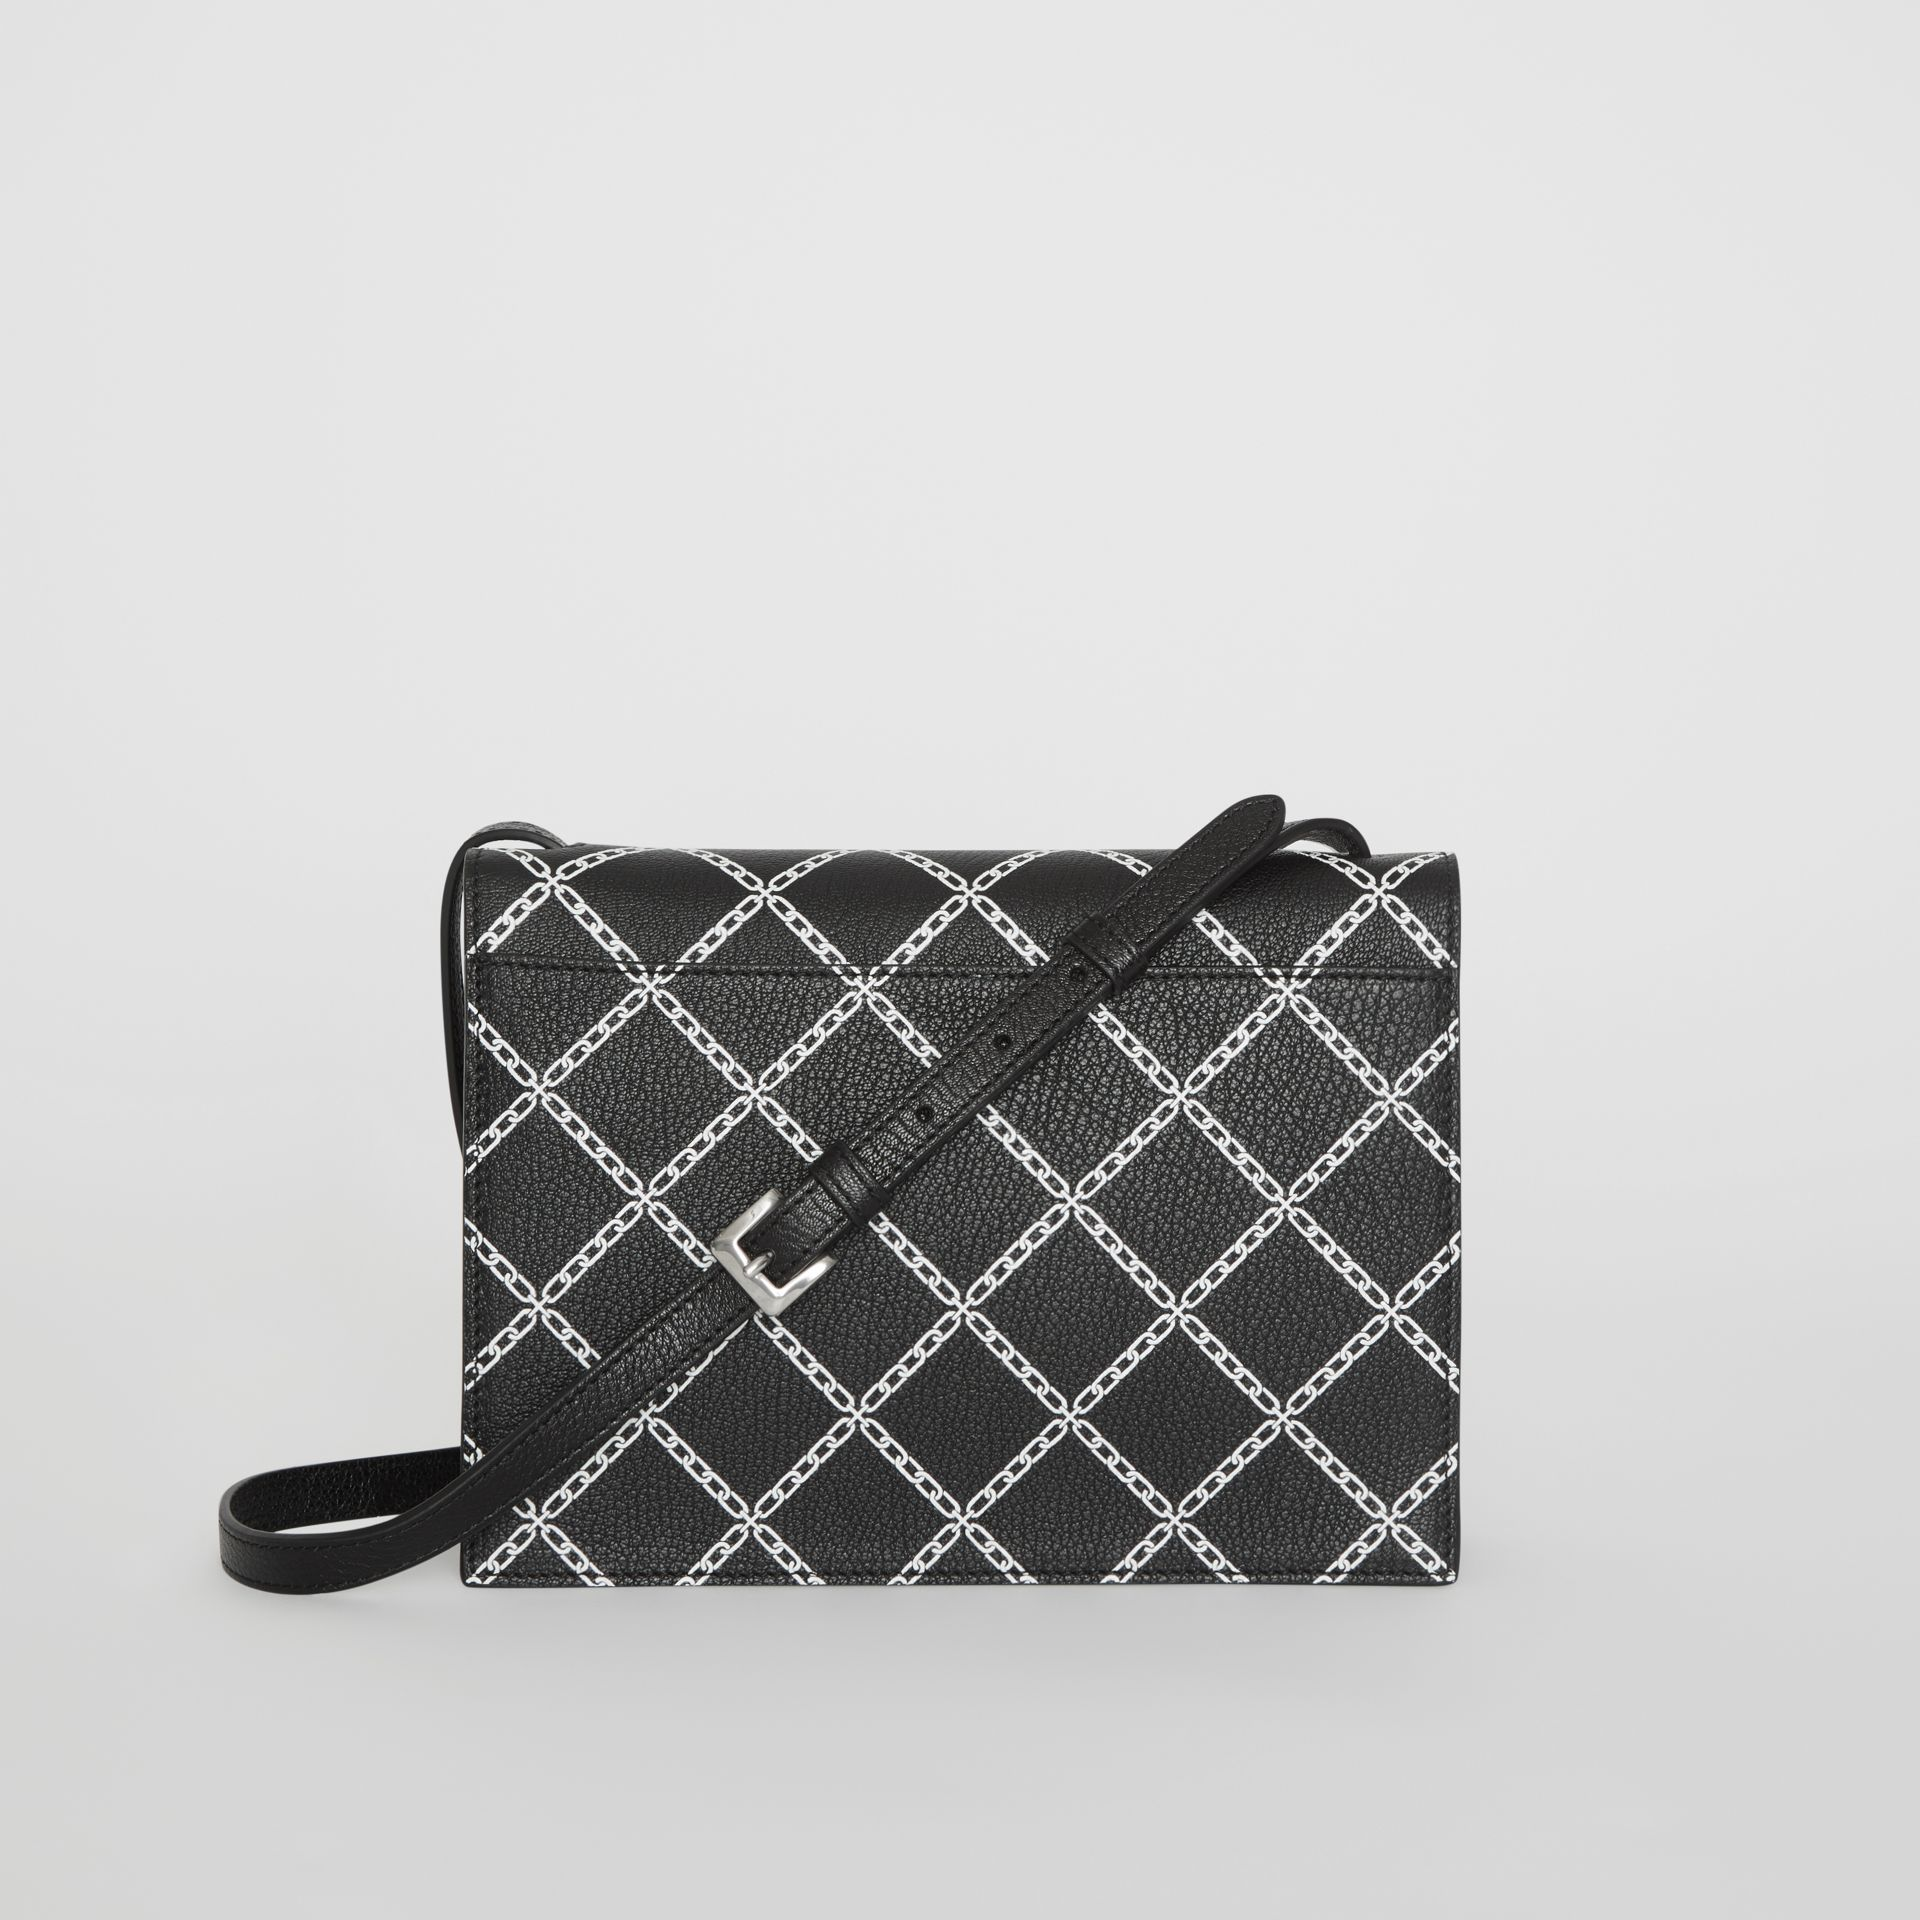 Small Link Print Leather Crossbody Bag in Black - Women | Burberry United Kingdom - gallery image 7